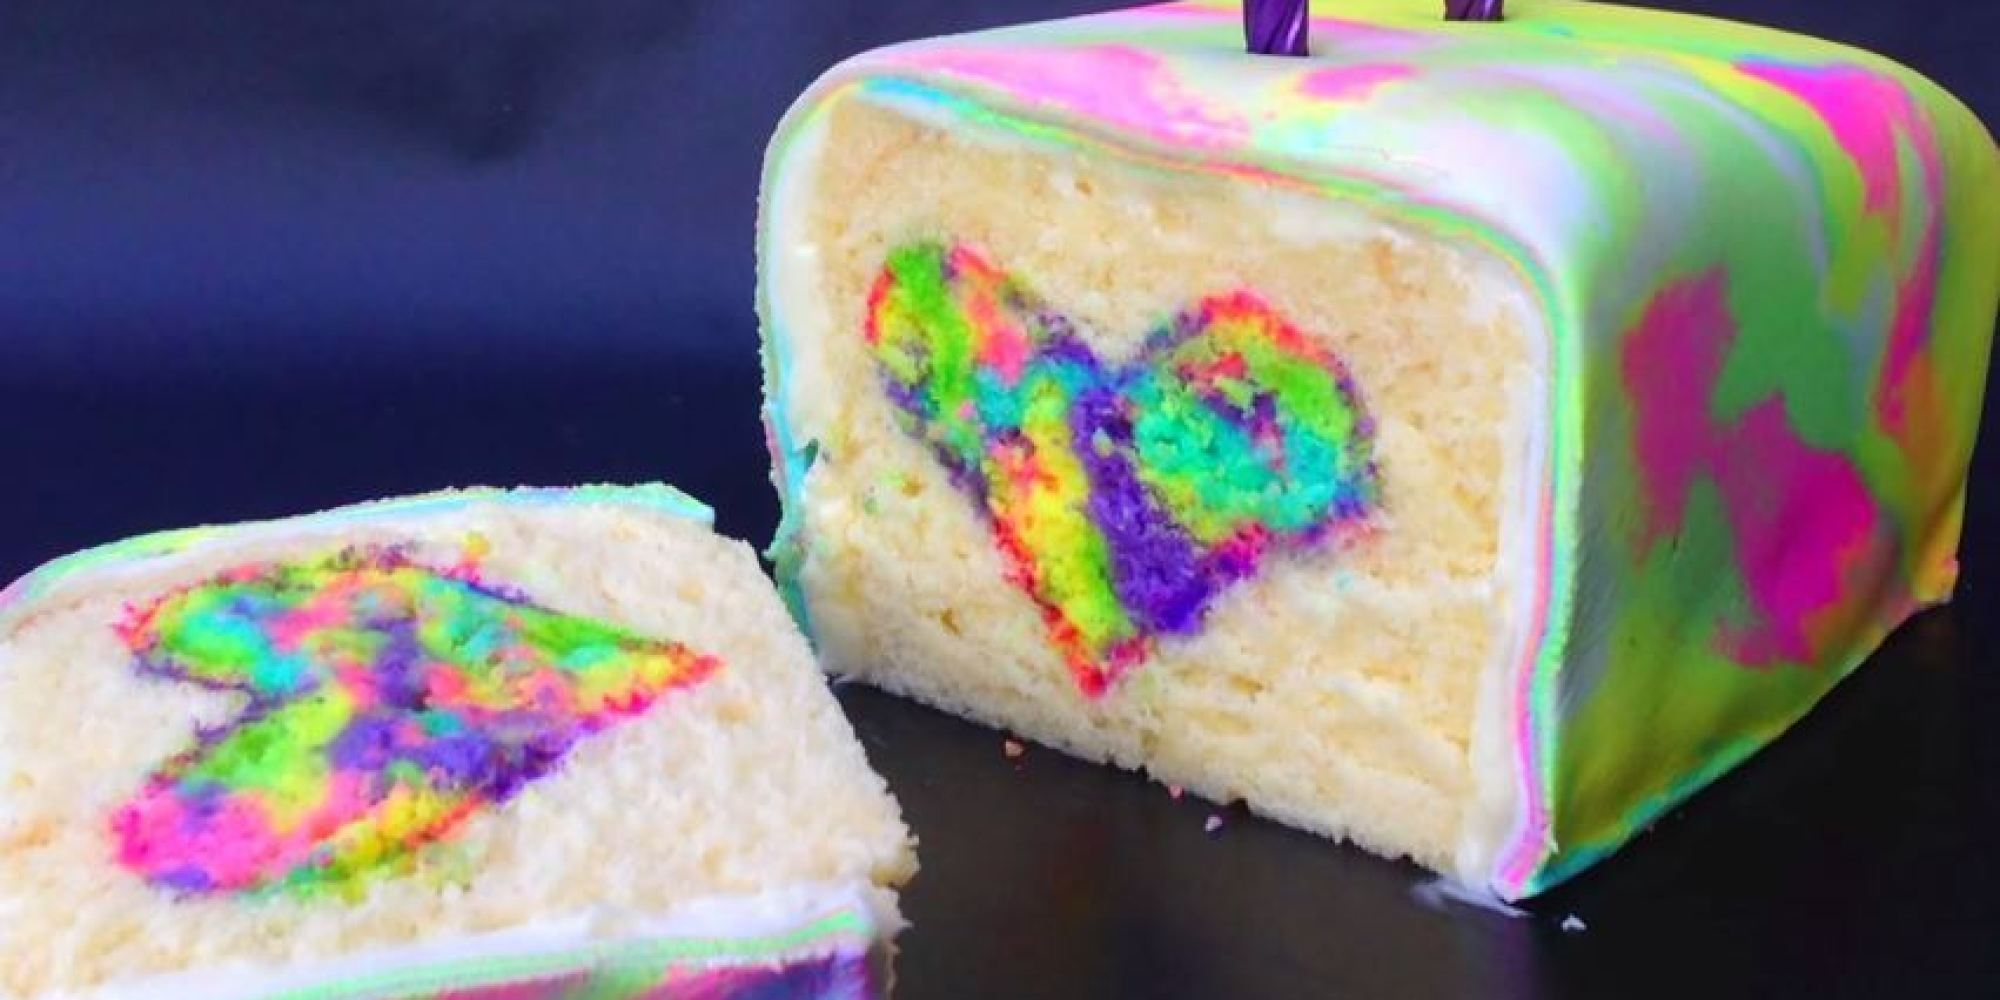 Melted Crayons On Cake Ideas And Designs